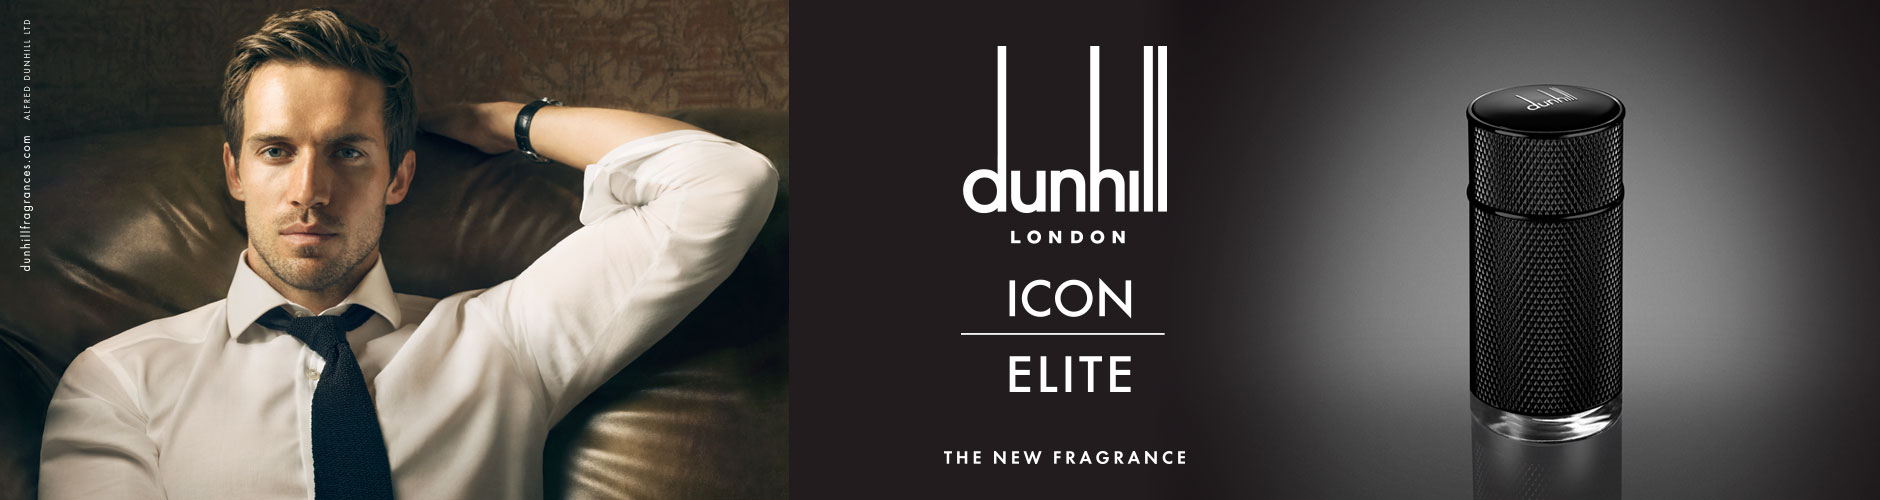 Dunhill London: Icon Elite - The New Fragrance